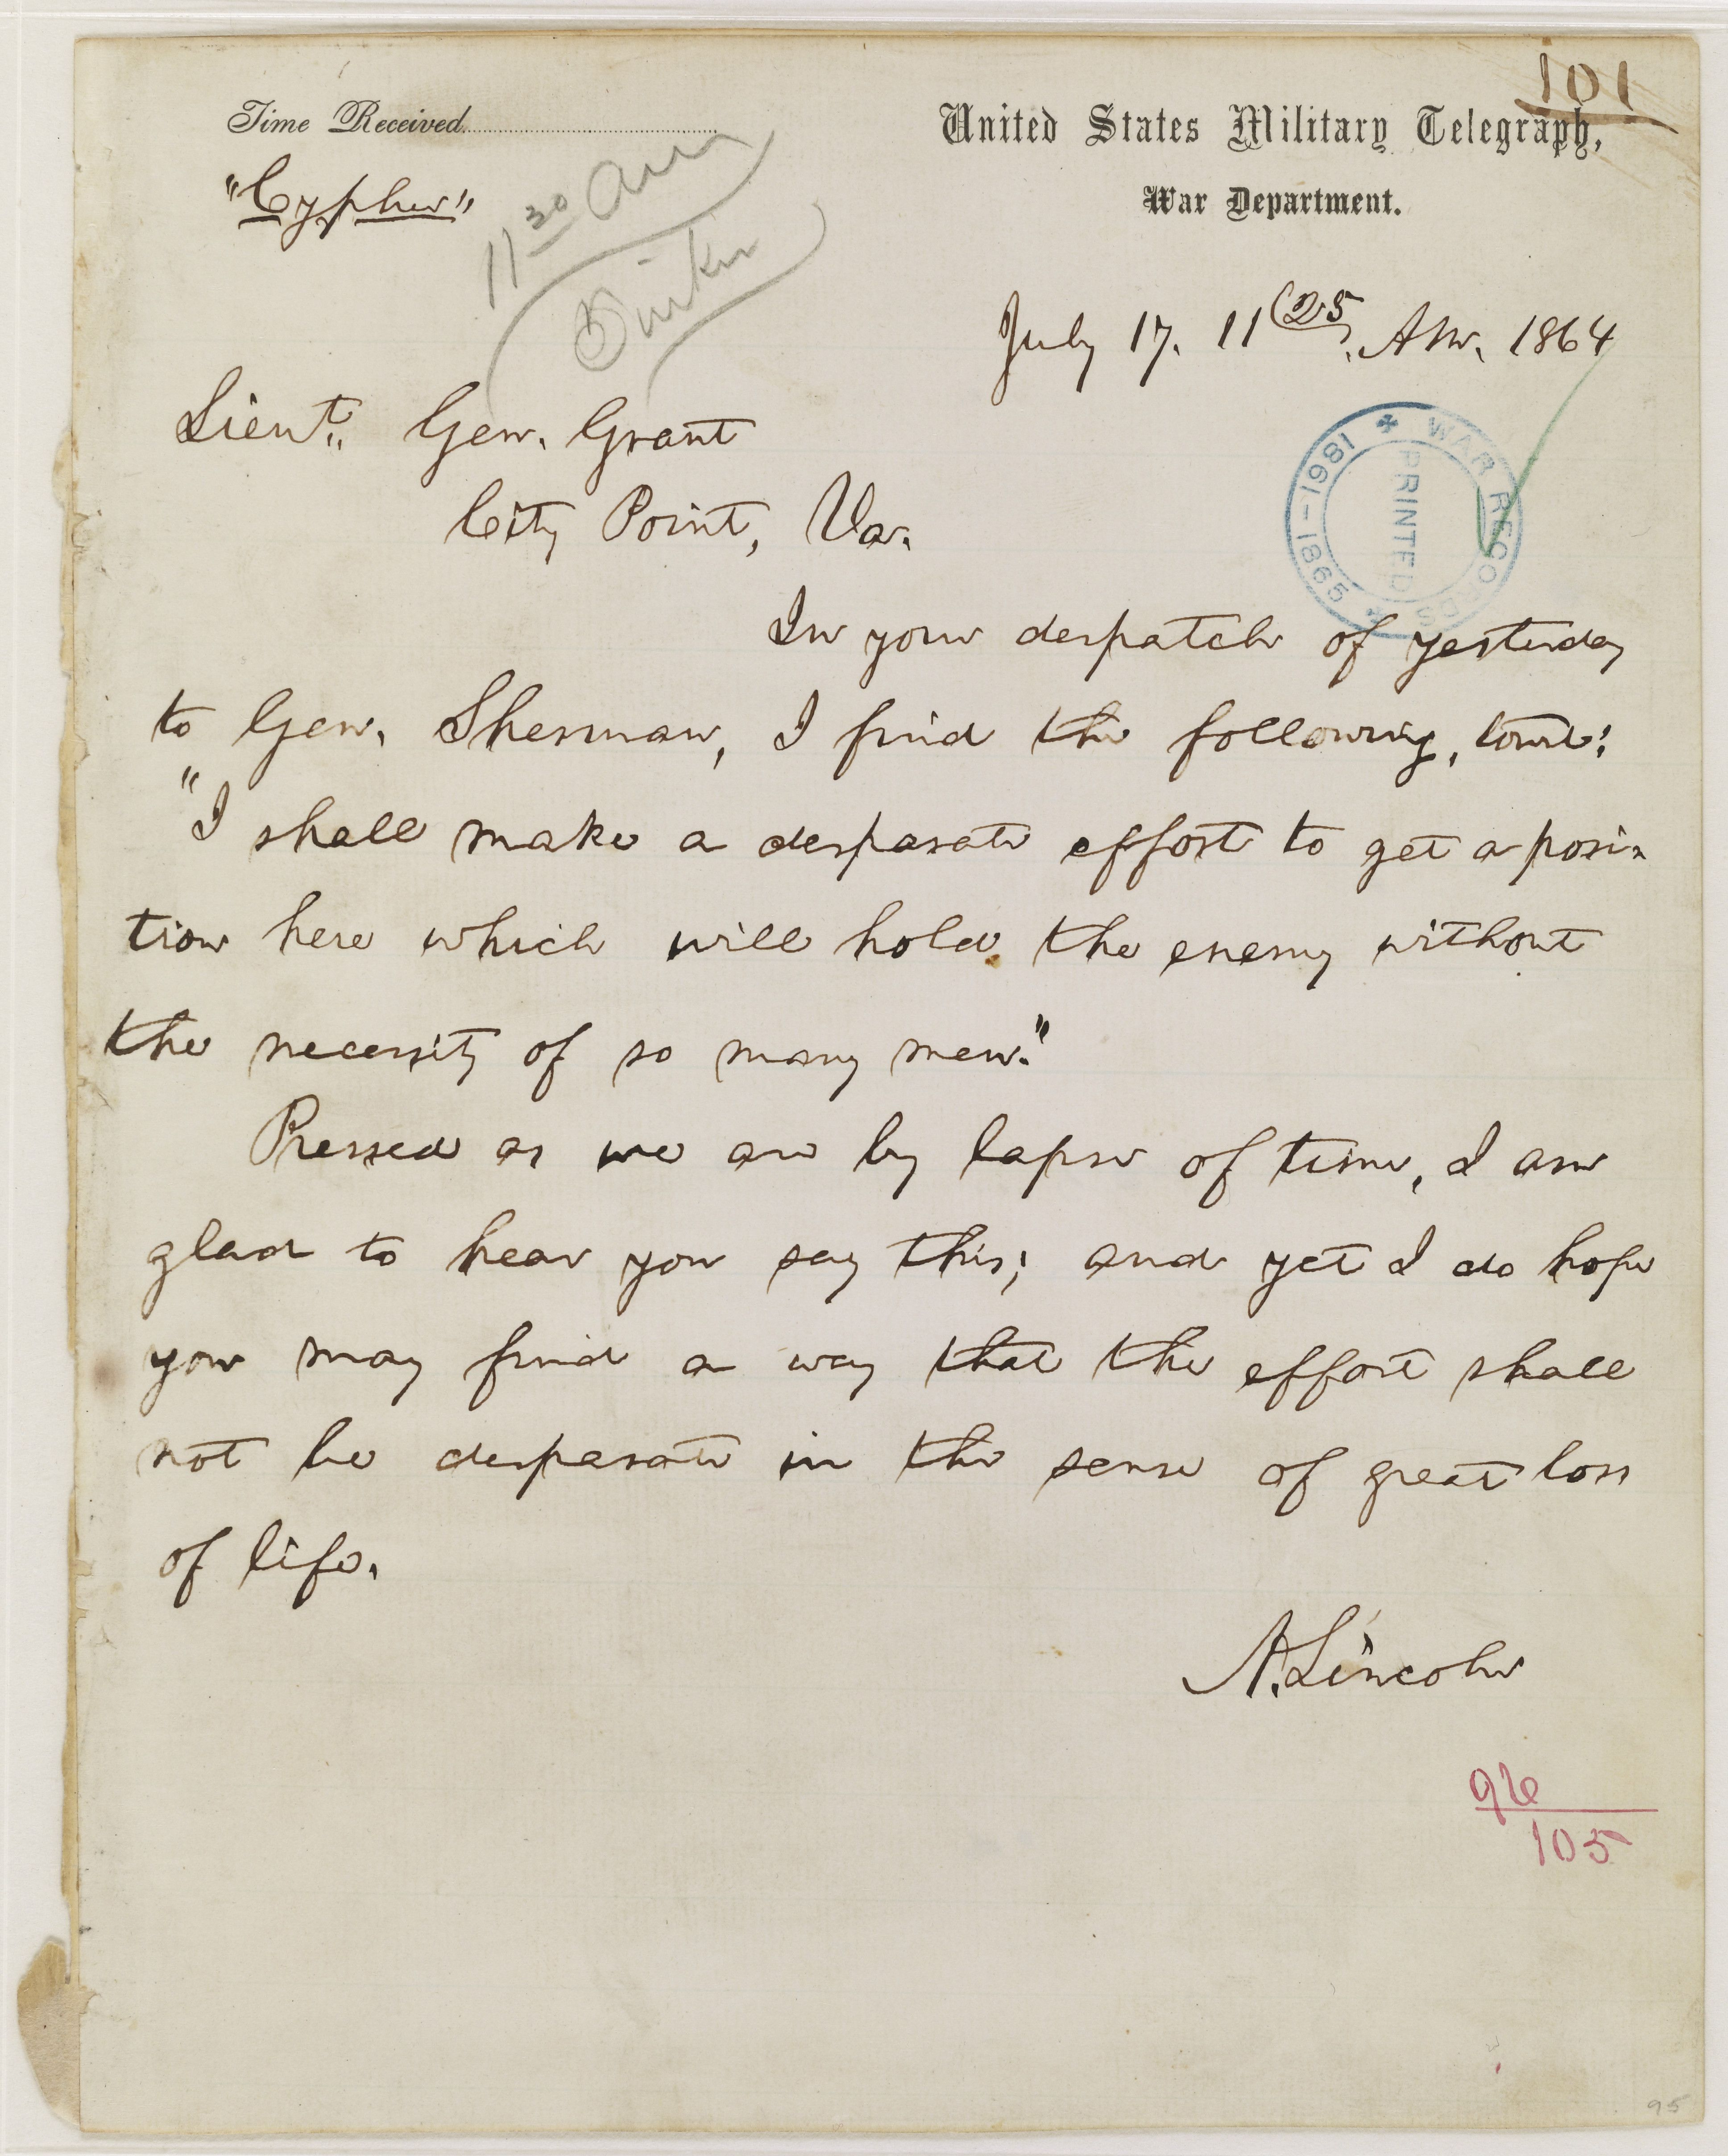 This is a telegram from President Abraham Lincoln to